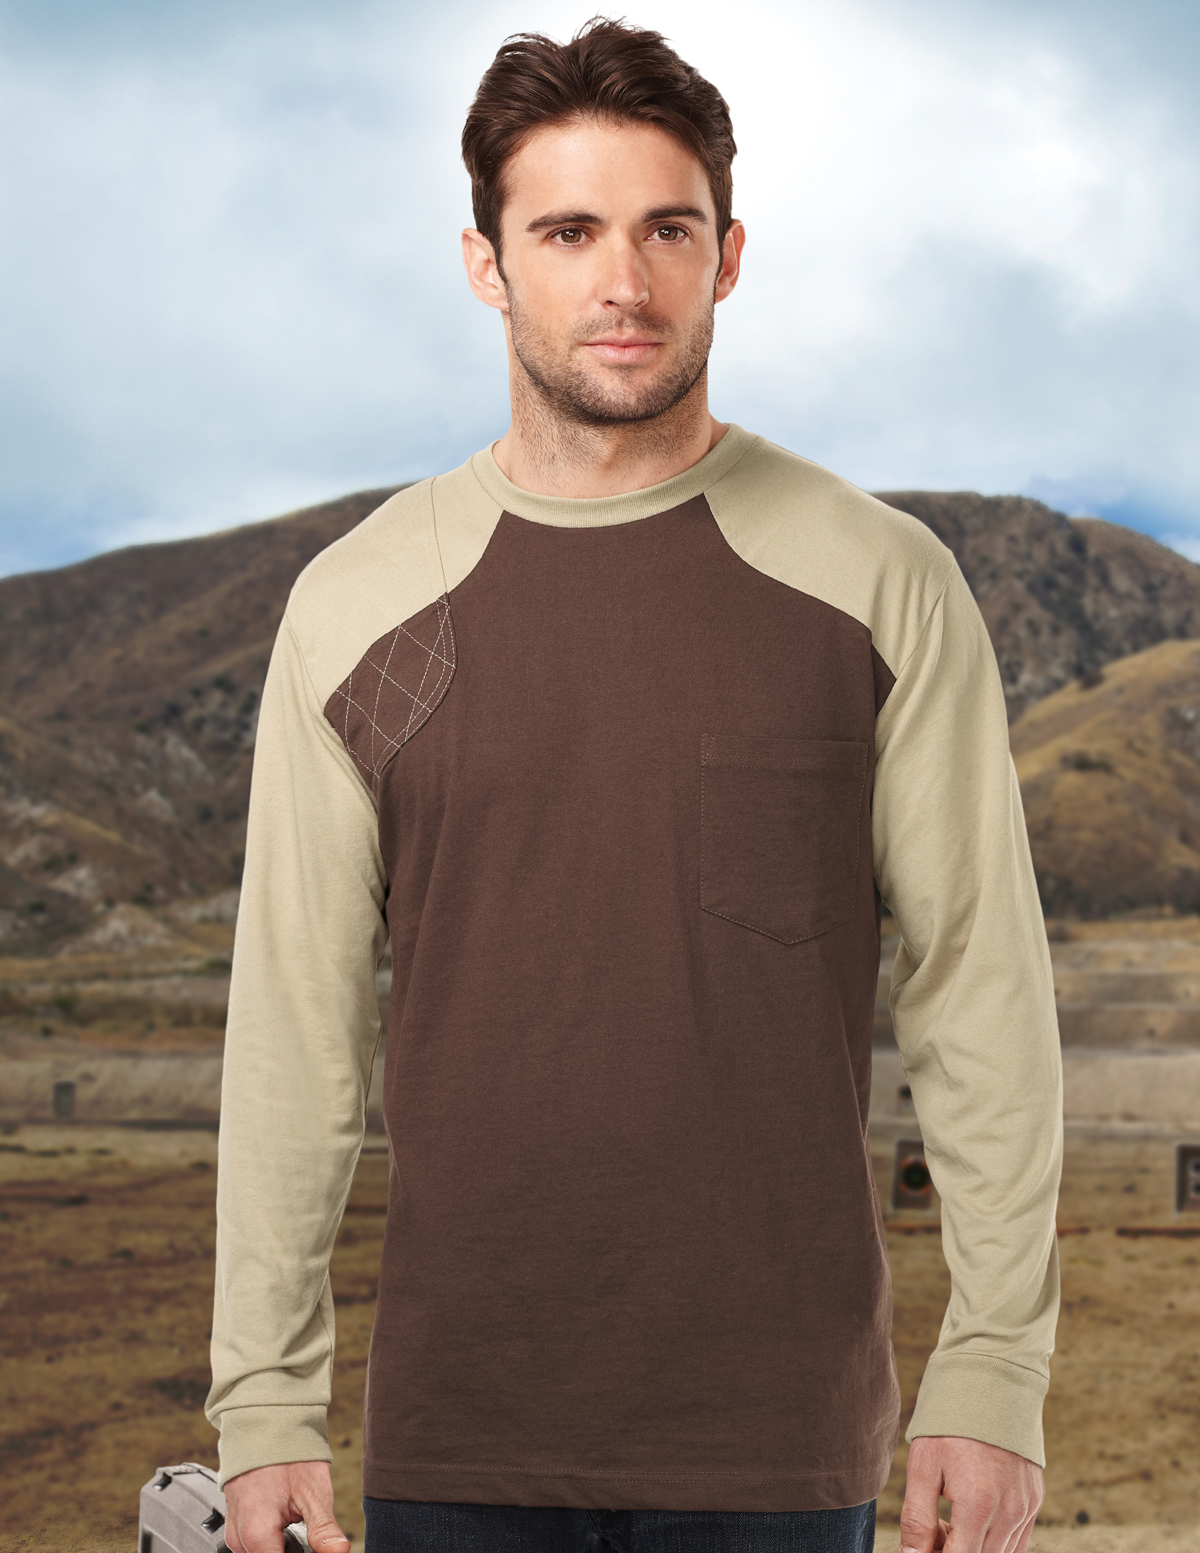 Tri-Mountain Woodruff Long Sleeve K086LS Shooter Tee, 2X-Large, Brown/Khaki